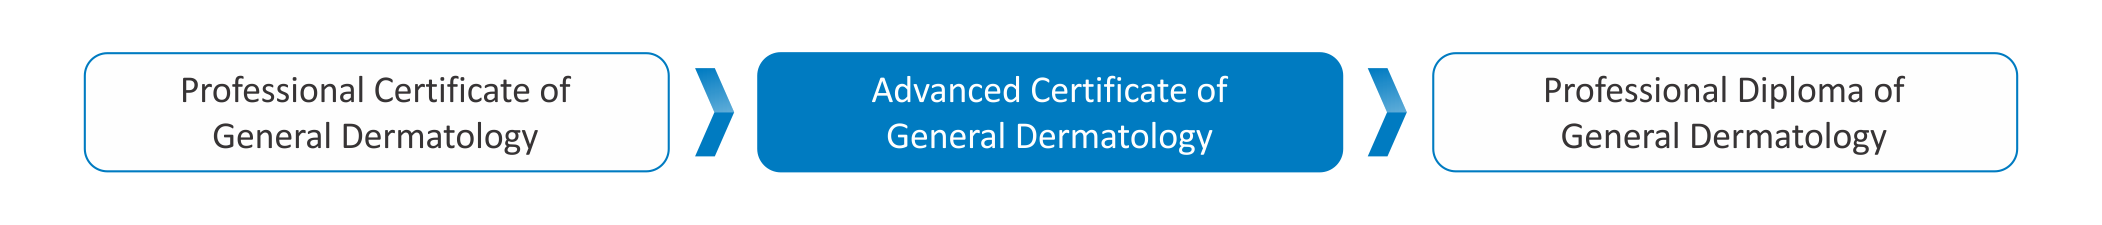 Advanced_Certificate_of_Dermatology-1.png